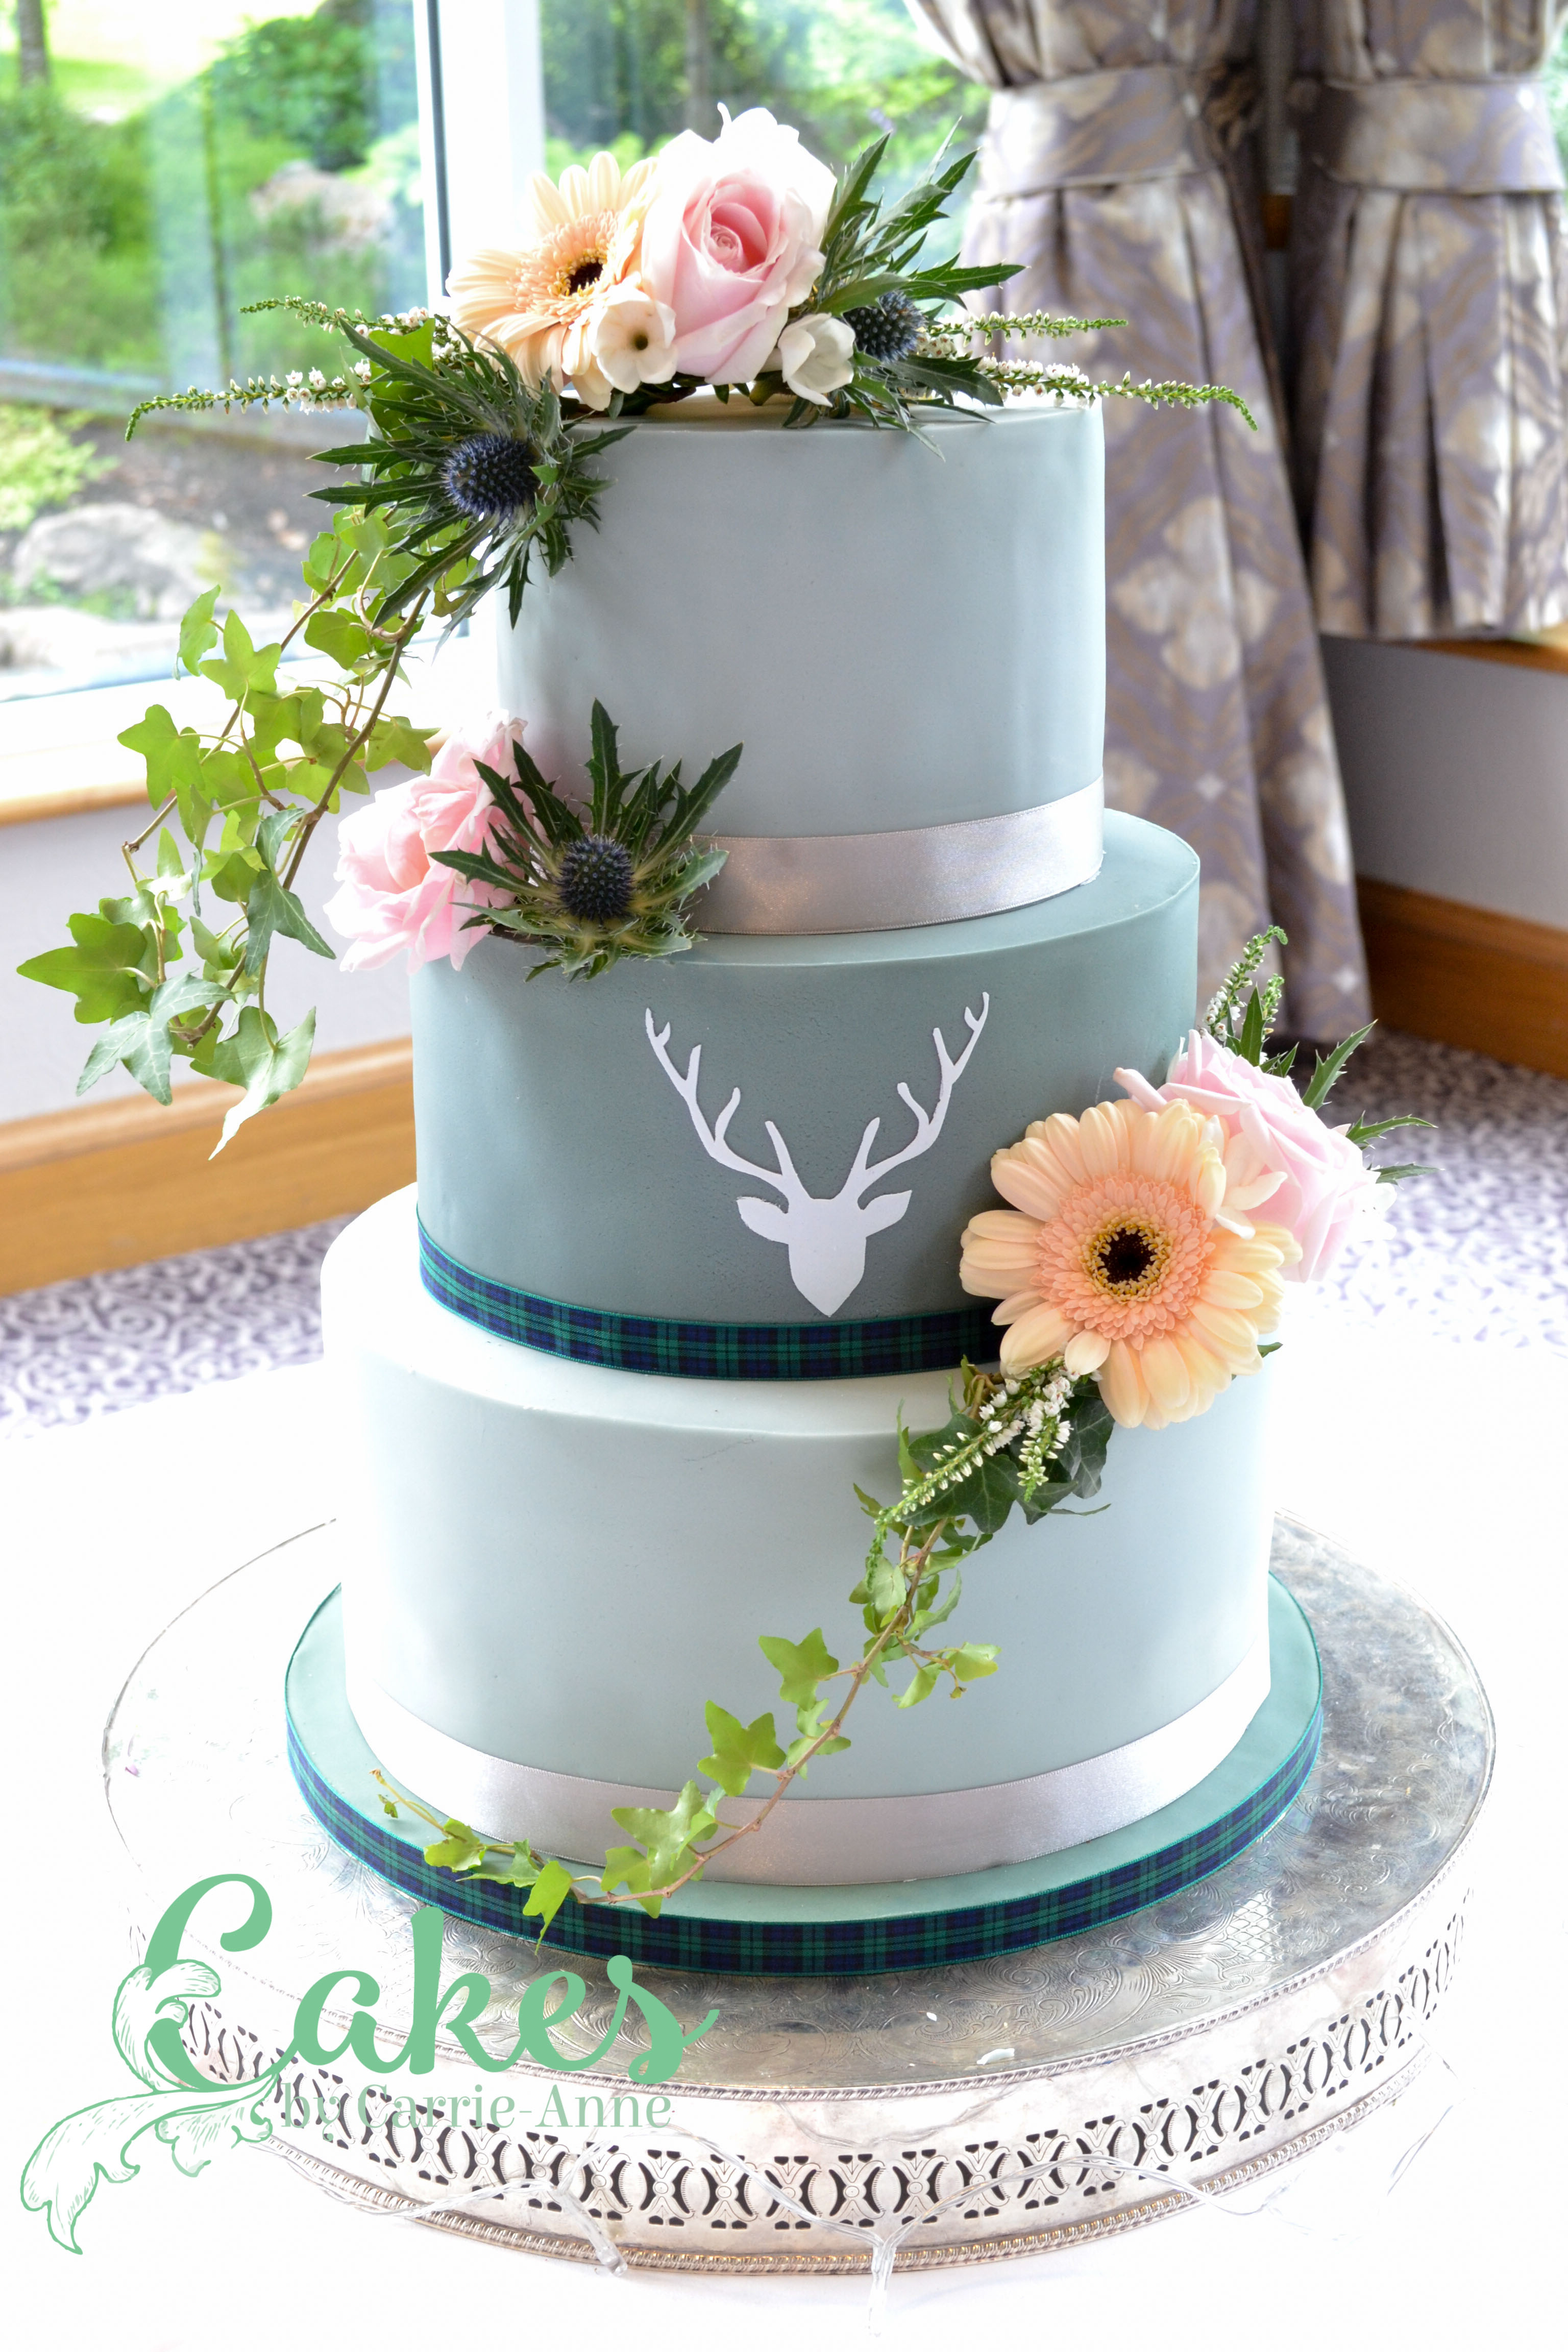 Grey Stag Silhouette Wedding Cake Cakes By Carrie Anne